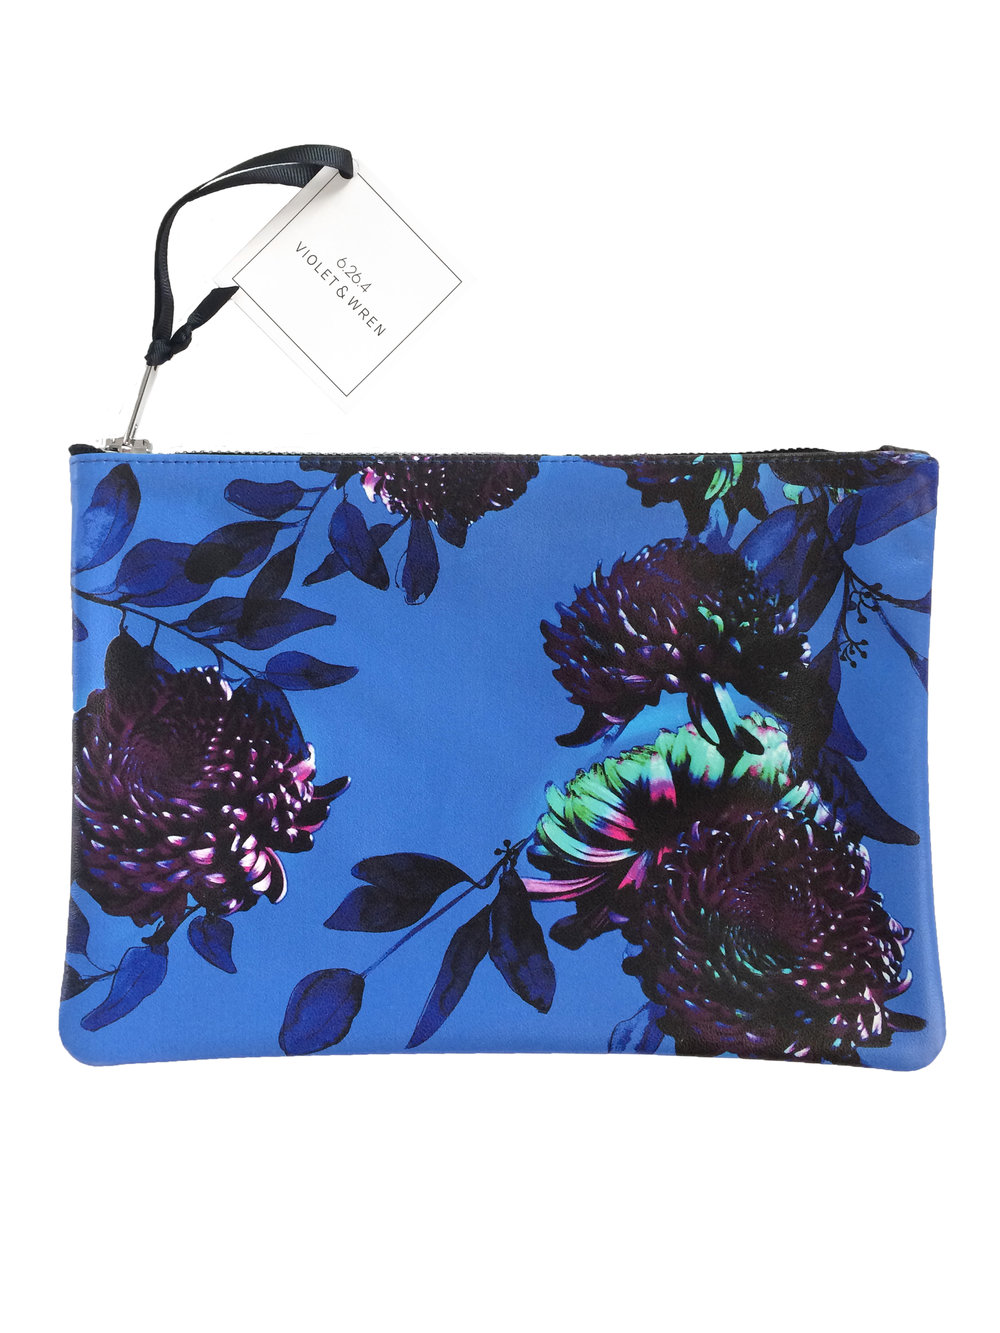 LEATHER CLUTCH BAG ORIENT BLOOM .jpg